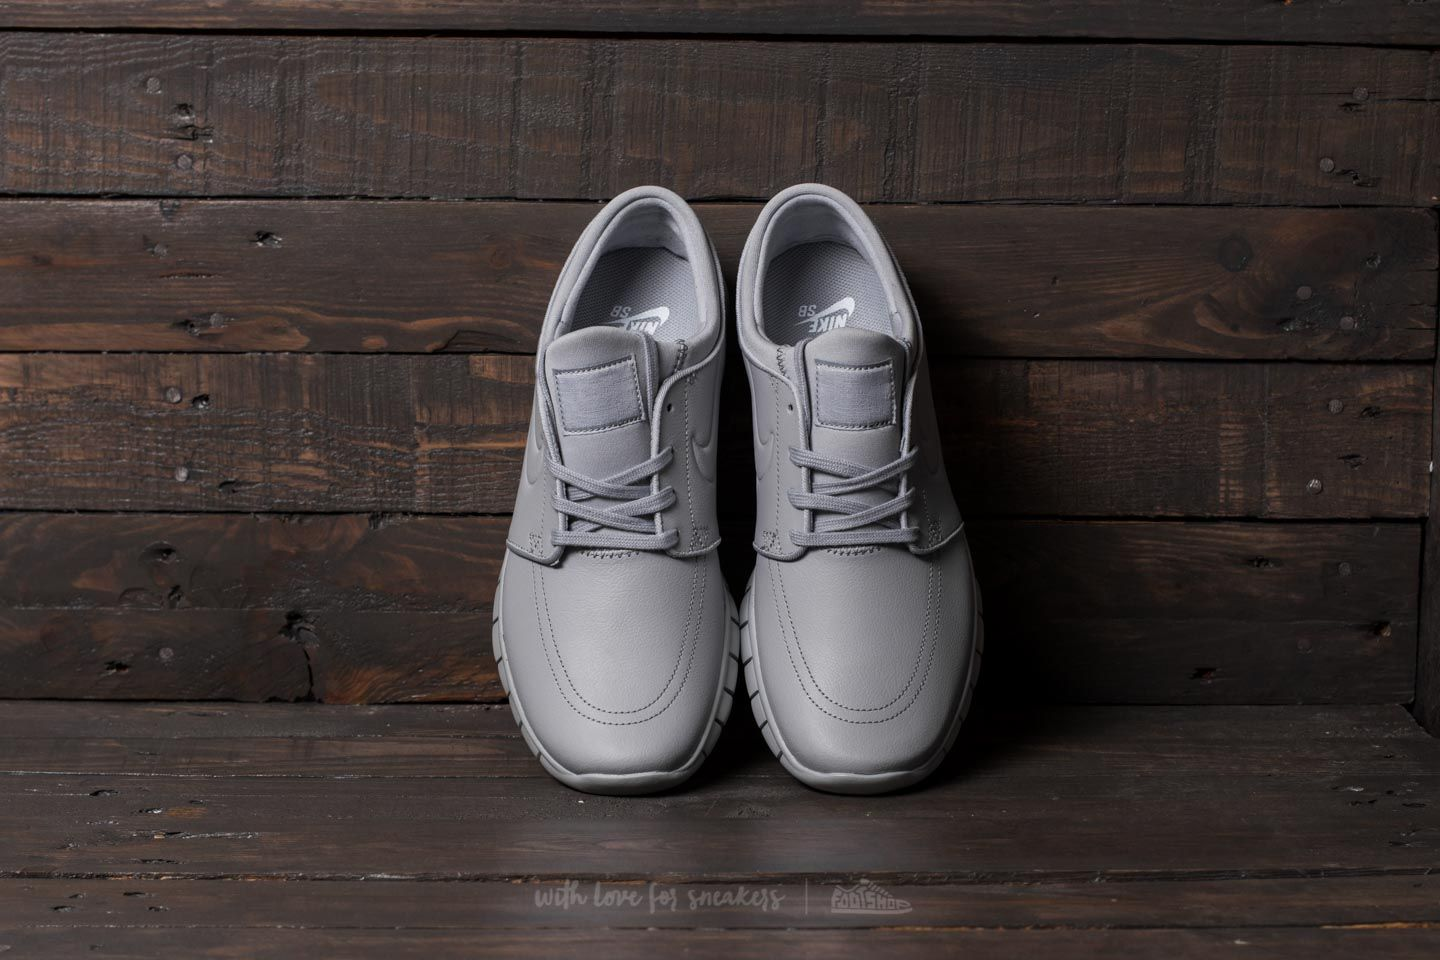 official photos 06d01 41e4a ... uk nike stefan janoski max l wolf grey wolf grey at a great price 159  buy